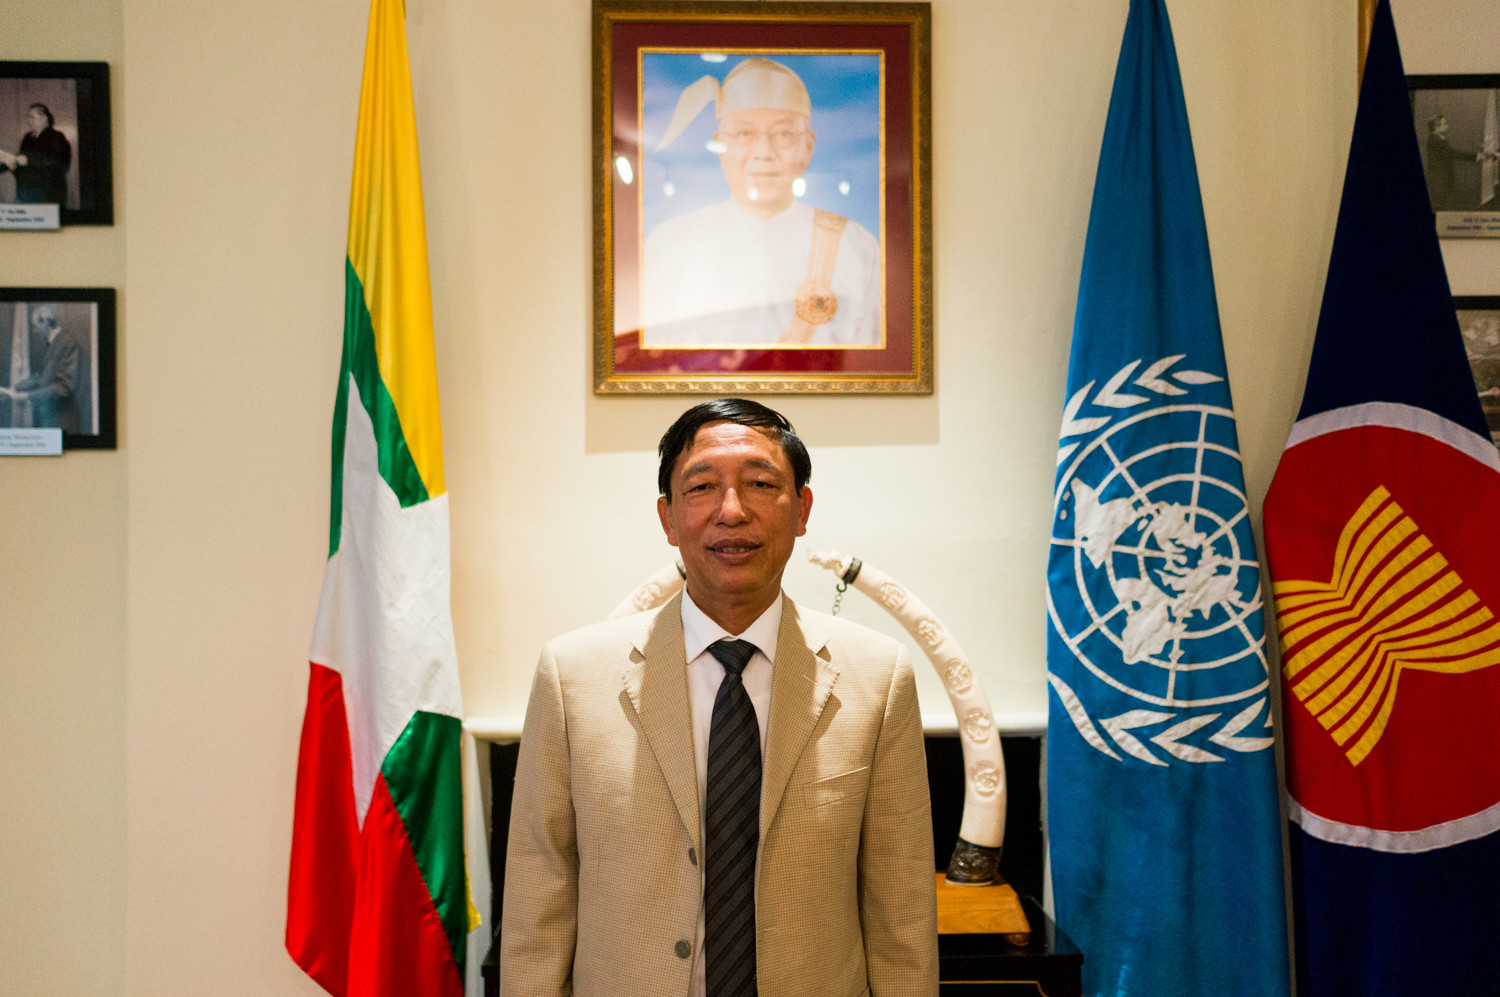 Hau Do Suan, the Burmese ambassador to the United Nations, maintains that the government wants to find a lasting, peaceful solution to the crisis in the Rakhine state in Myanmar, and professes not to know the root causes of why half a million people have fled the country.